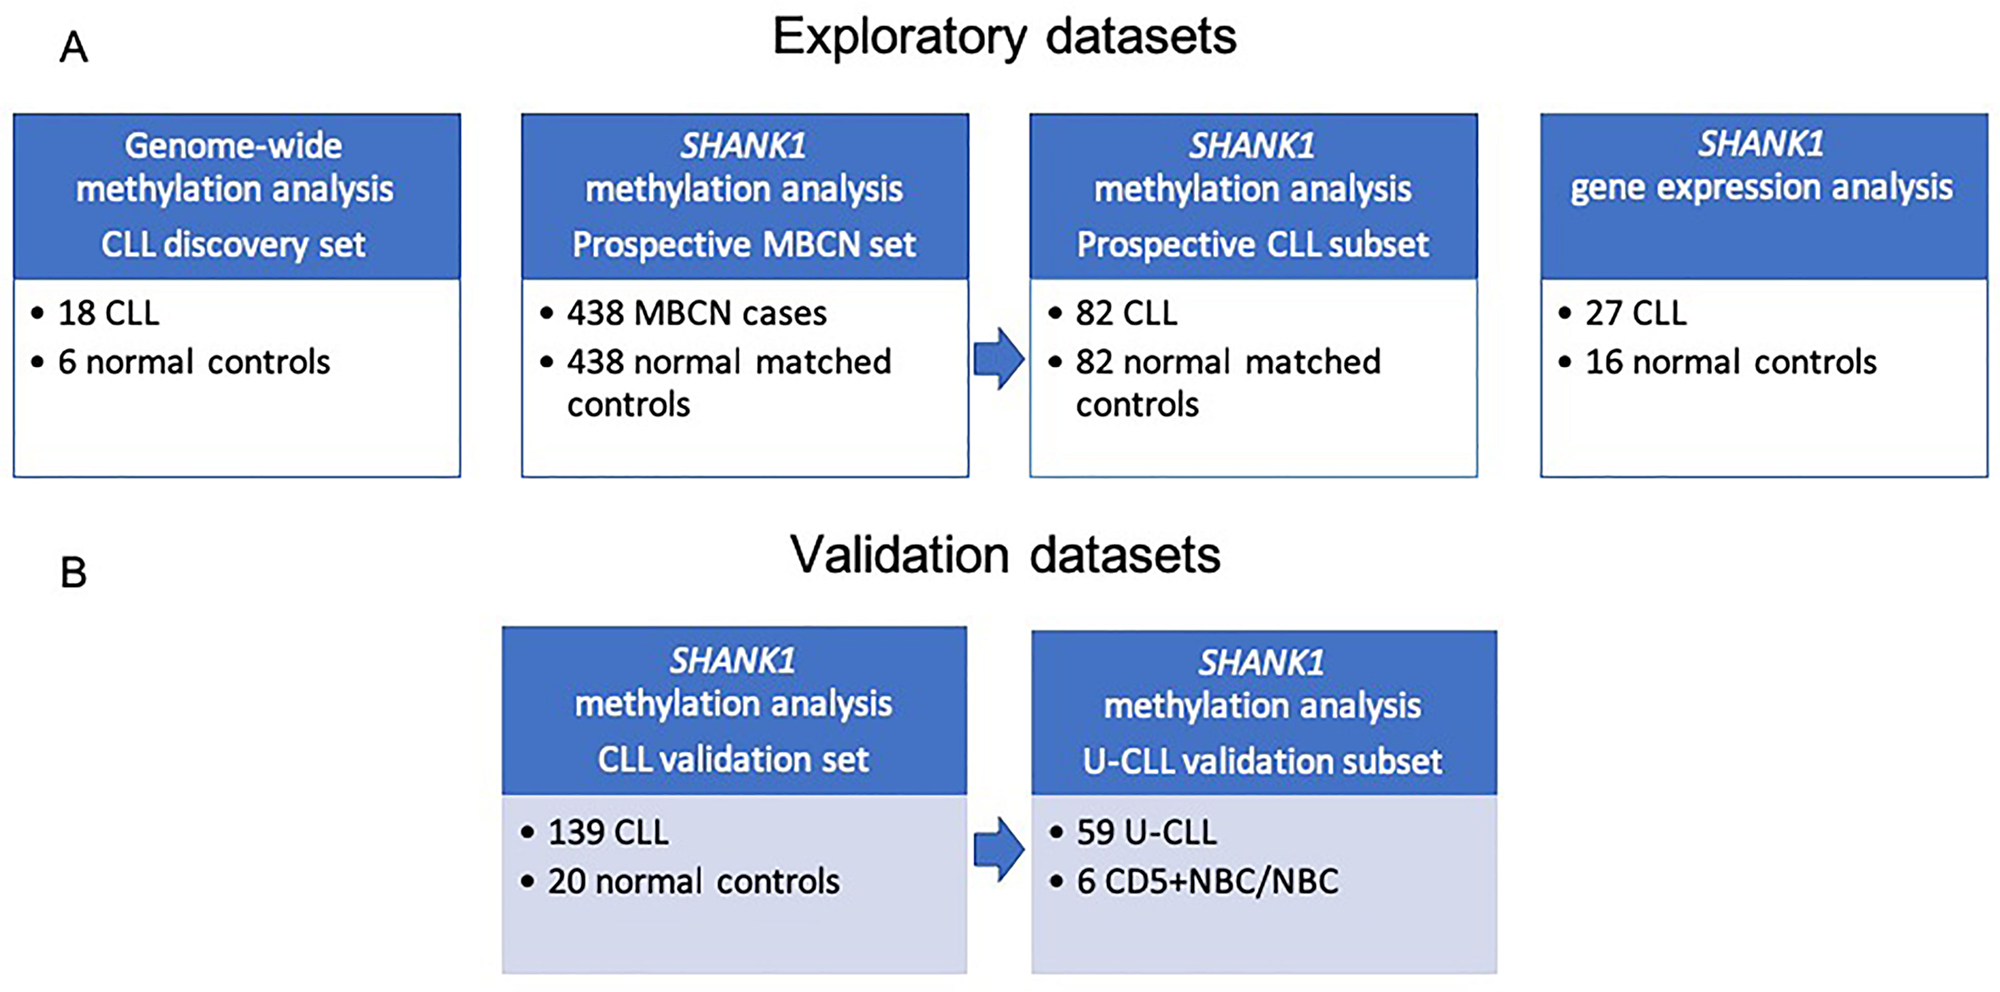 Study workflow including description of sample datasets used in the current study.